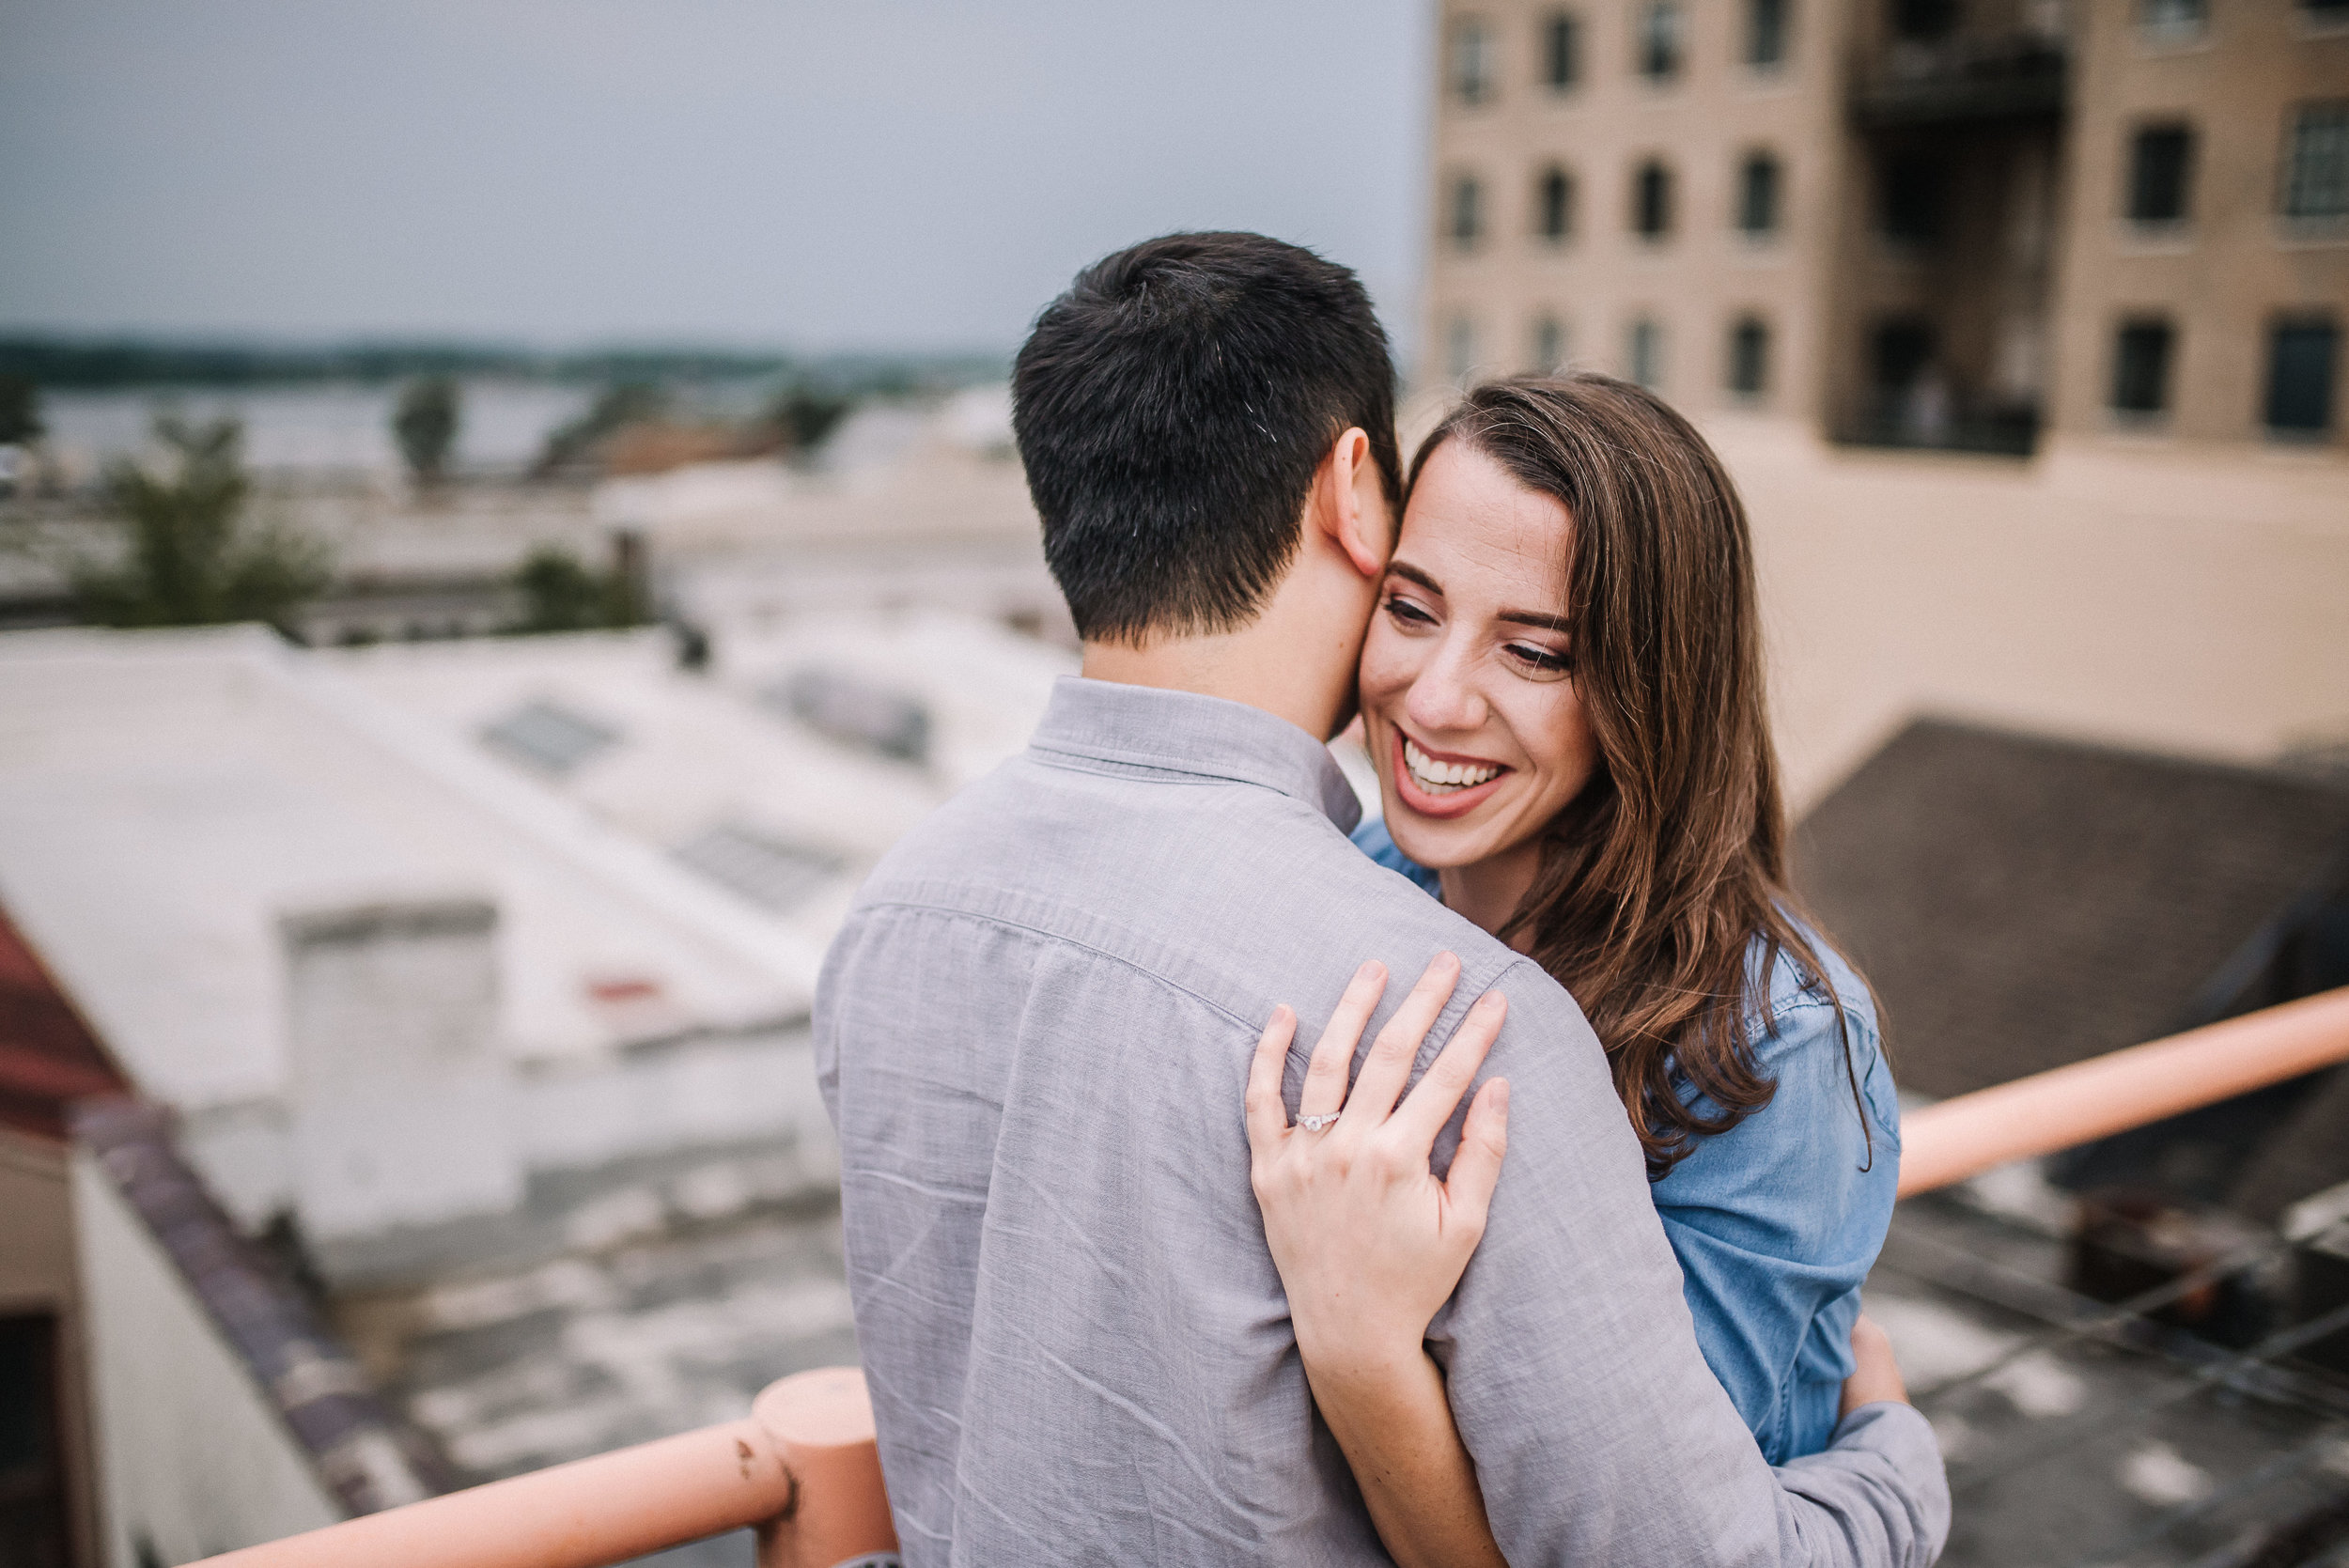 Jenny&Patrick_Downtown Memphis Engagement_Ashley Benham Photography-133.jpg